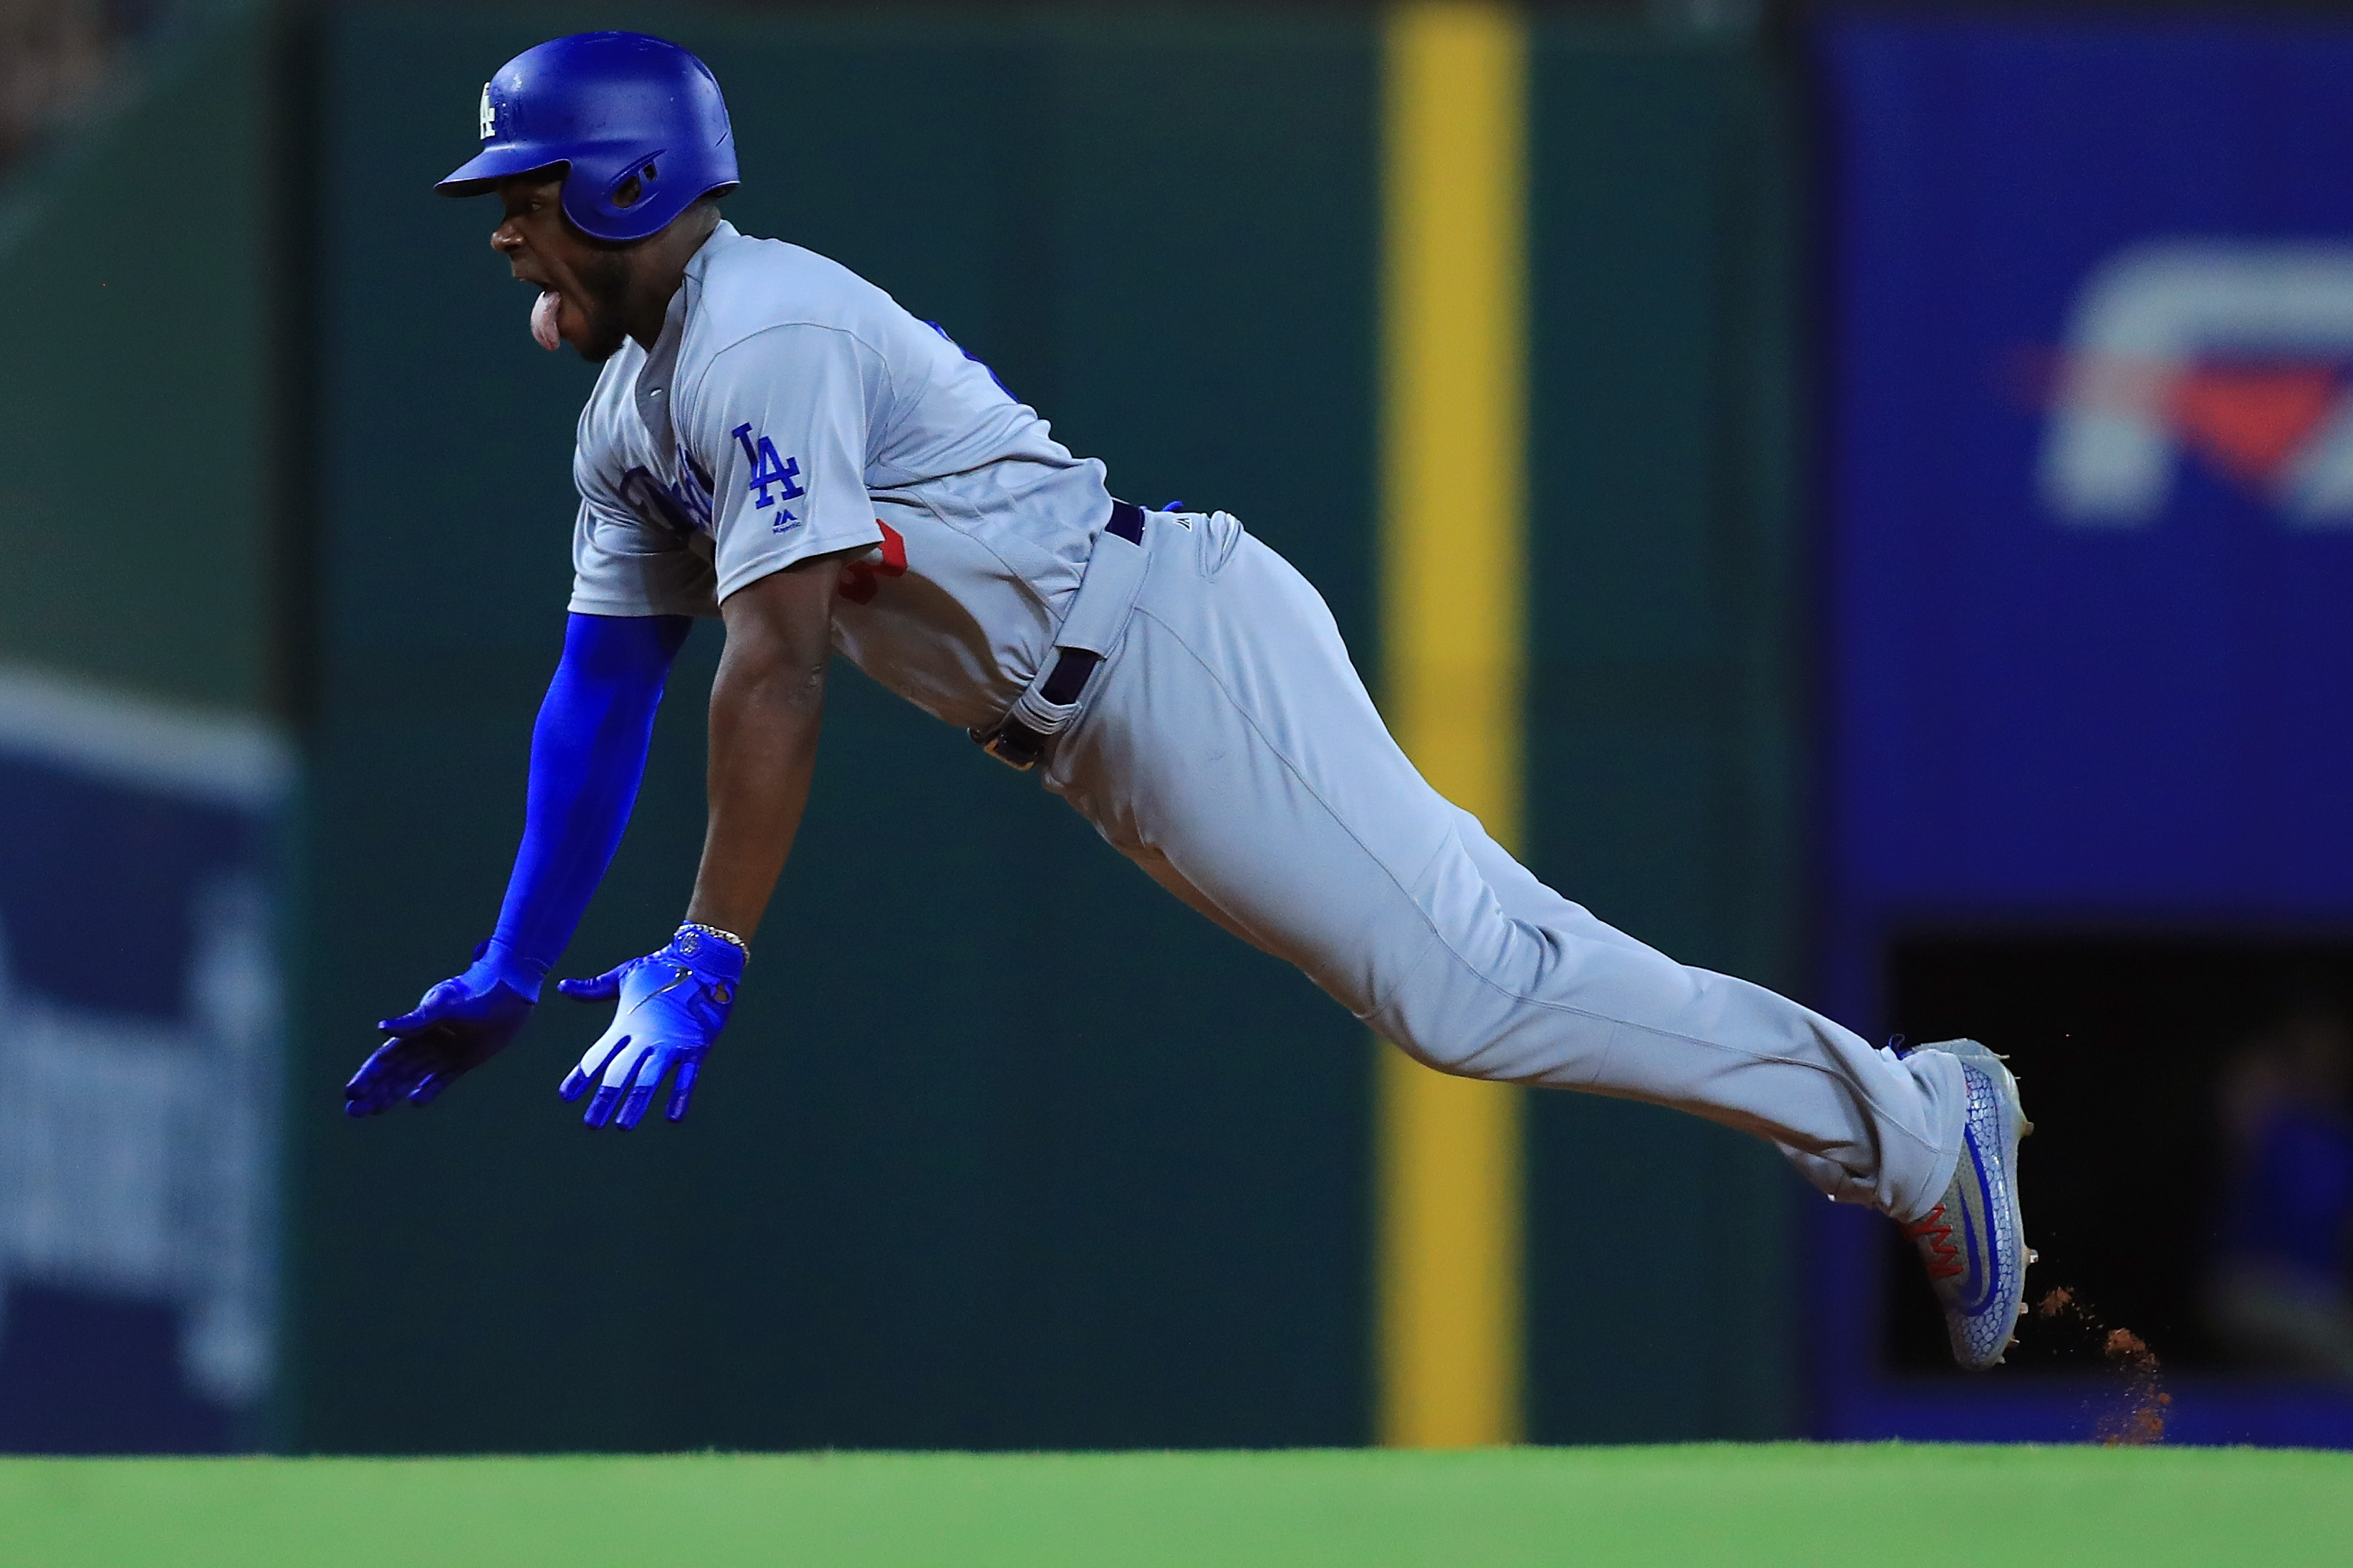 Yasiel Puig #66 of the Los Angeles Dodgers dives into third base after hitting a triple against the Texas Rangers in the top of the seventh inning at Globe Life Park in Arlington on August 29, 2018 in Arlington, Texas. (Photo by Tom Pennington/Getty Images)